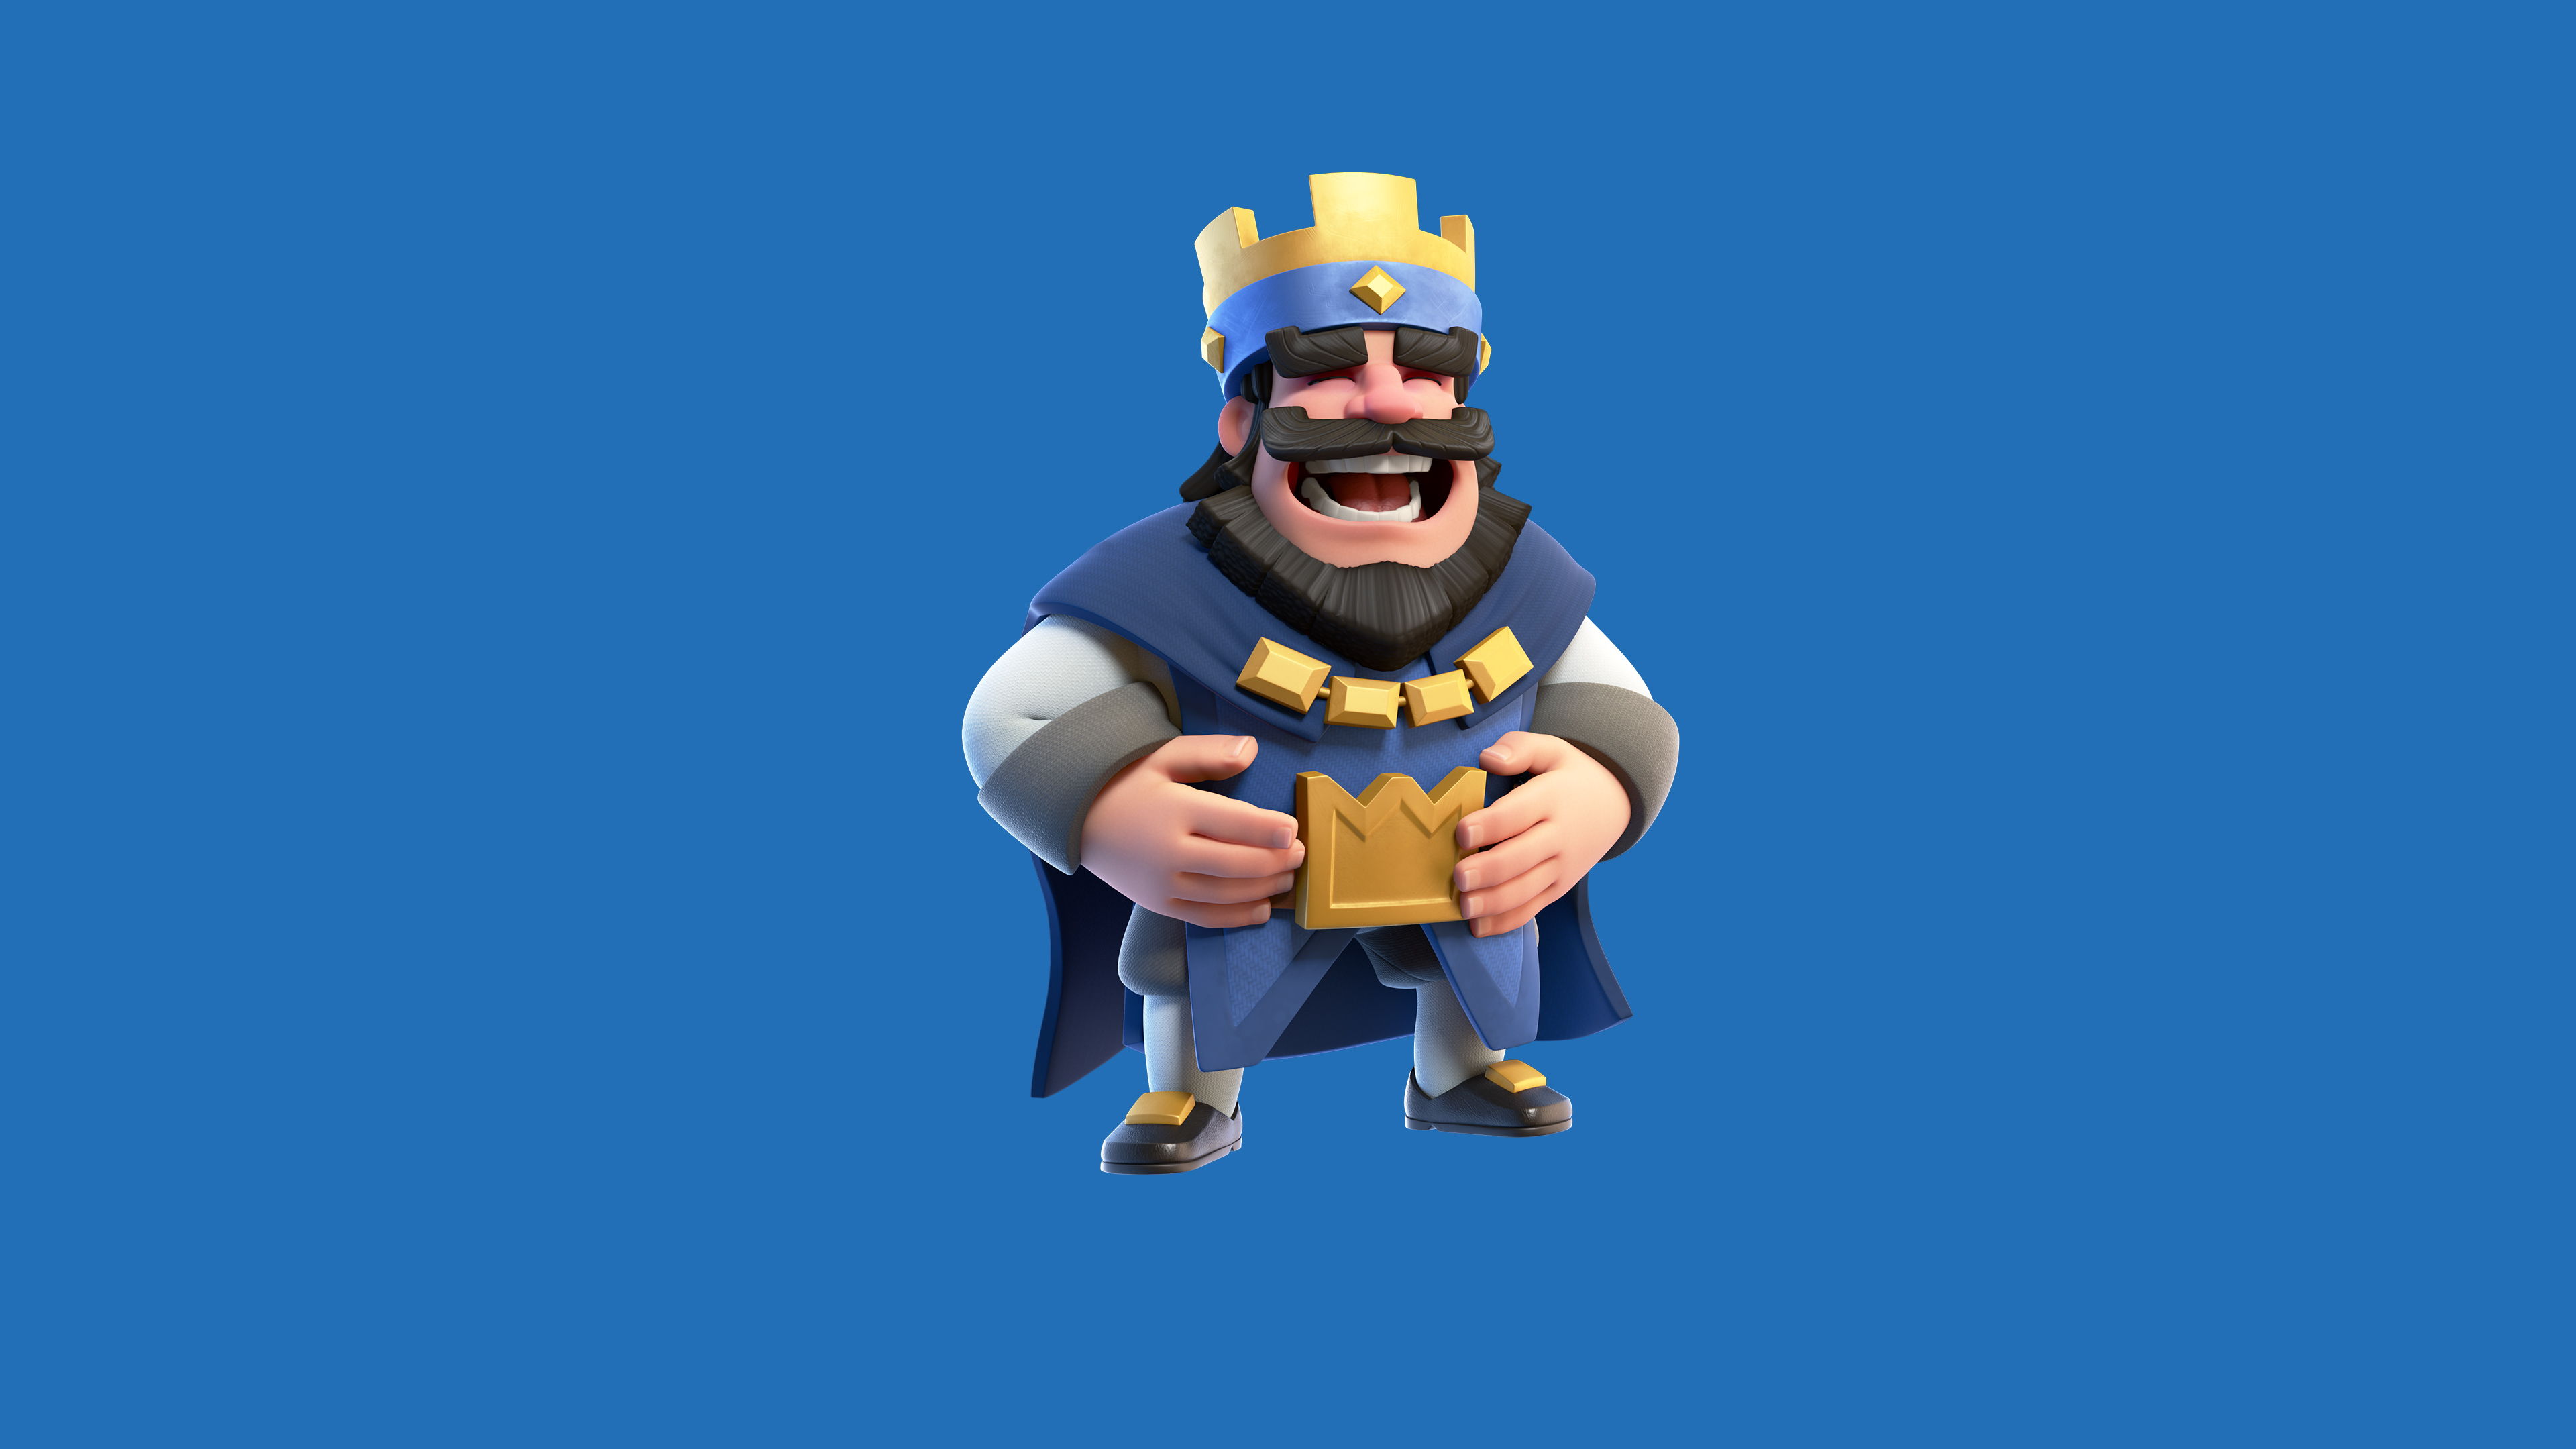 640x960 clash royale blue king iphone 4 iphone 4s hd 4k wallpapers images backgrounds photos - Clash royale 2560x1440 ...